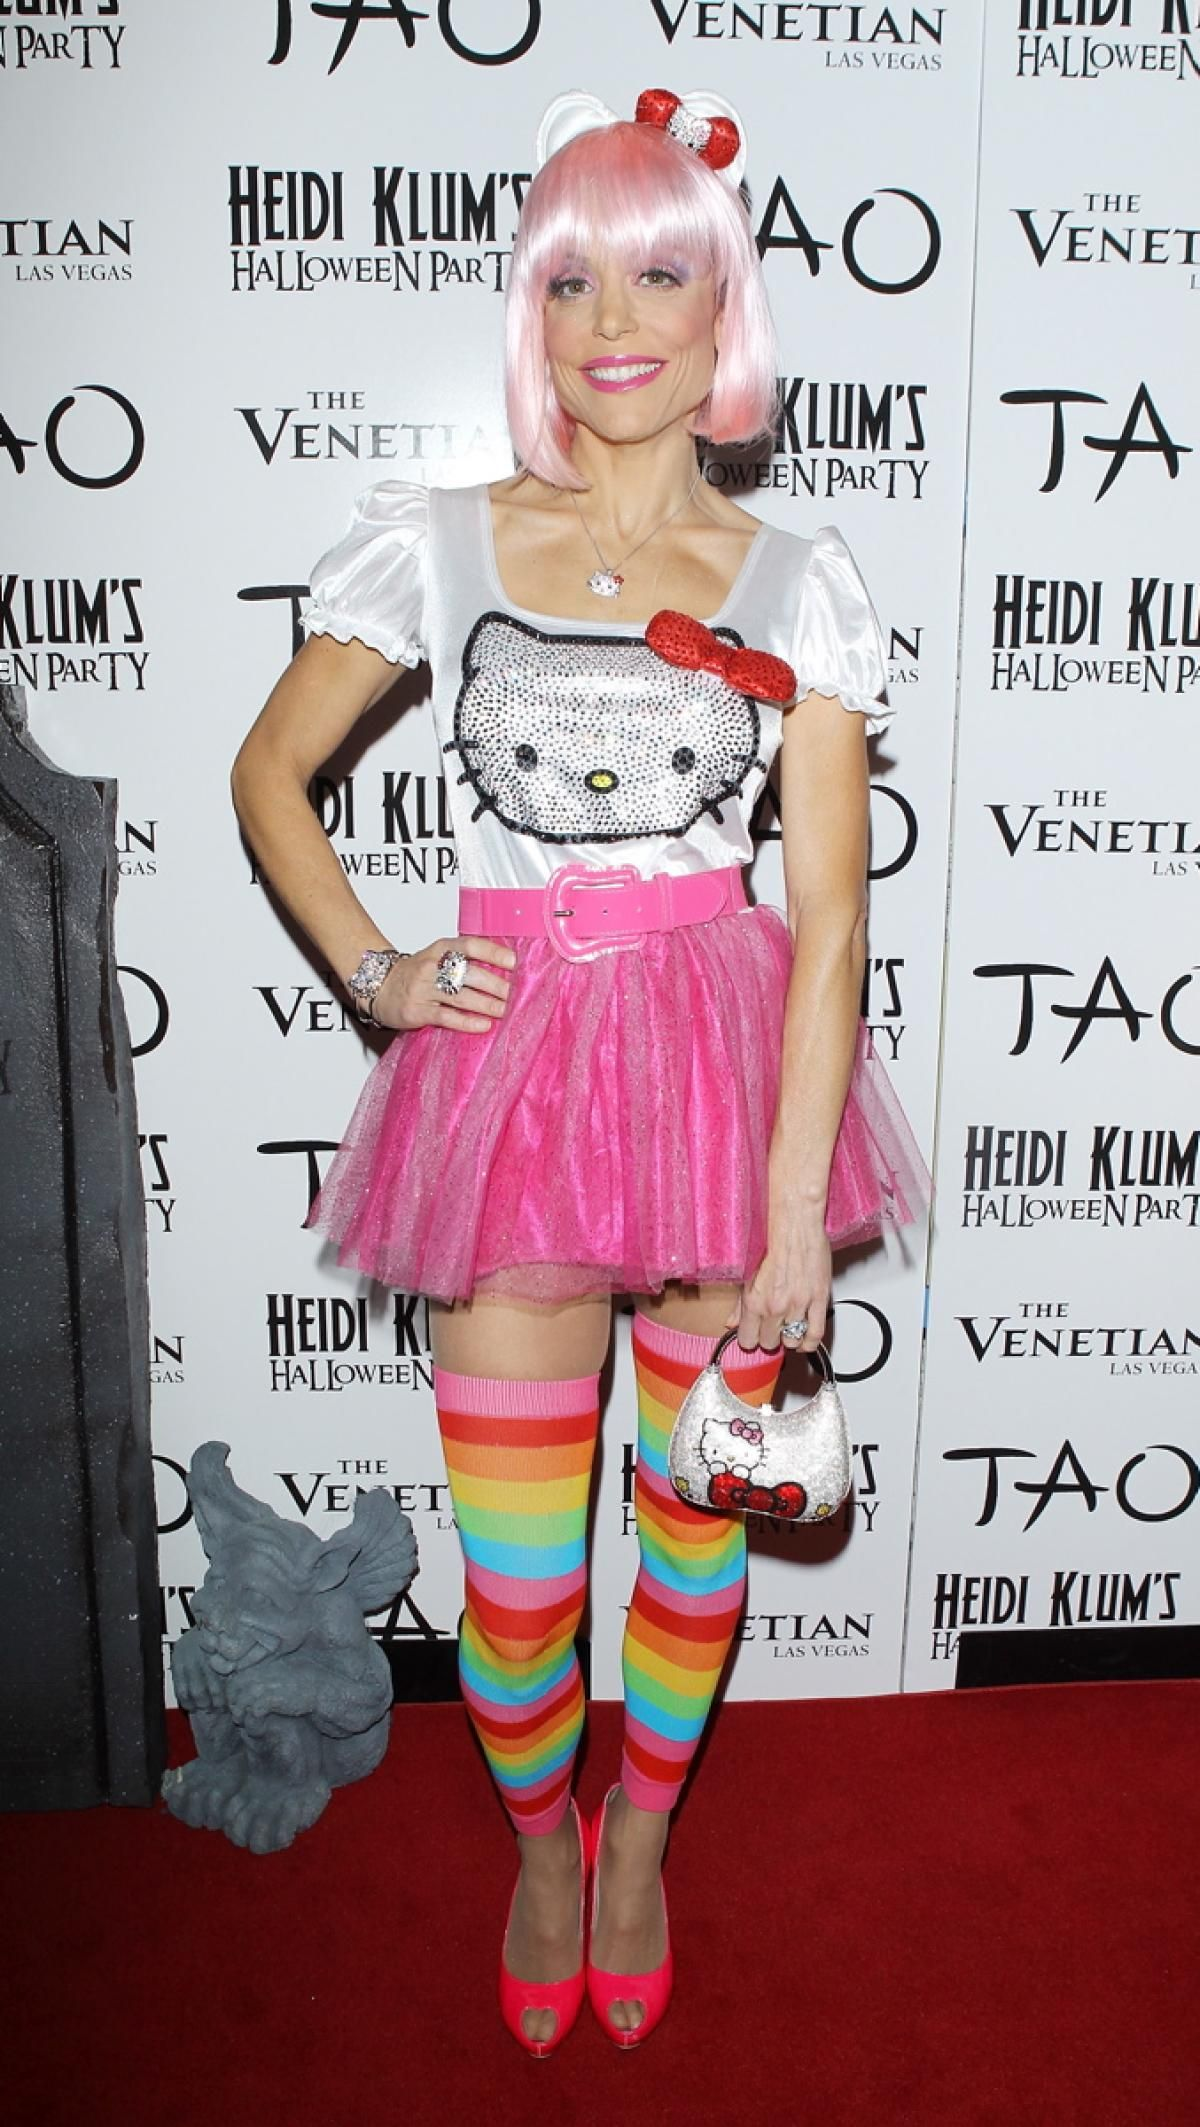 Bethenny Frankel loves Hello Kitty so much she dressed up as her for Halloween! The reality TV star rocked a colorful costume complete with a pink wig and cat ears to Heidi Klum's 12th Annual Halloween Party on Oct. 29, 2011.